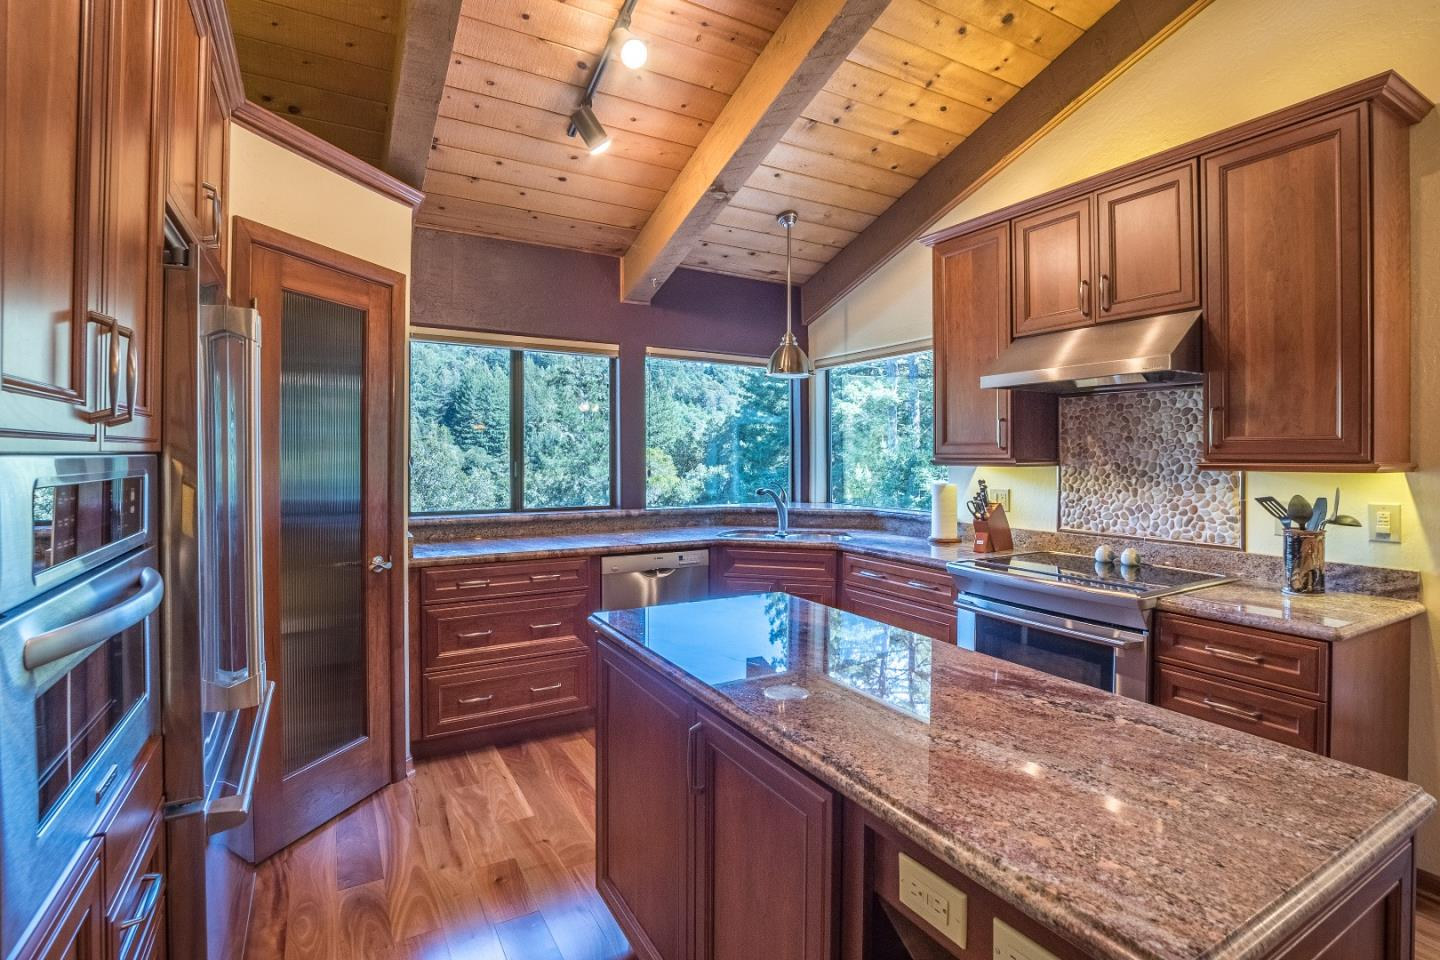 345 Ohlone Trl, Scotts Valley, CA 95066 - 4 Beds | 2/1 Baths ...